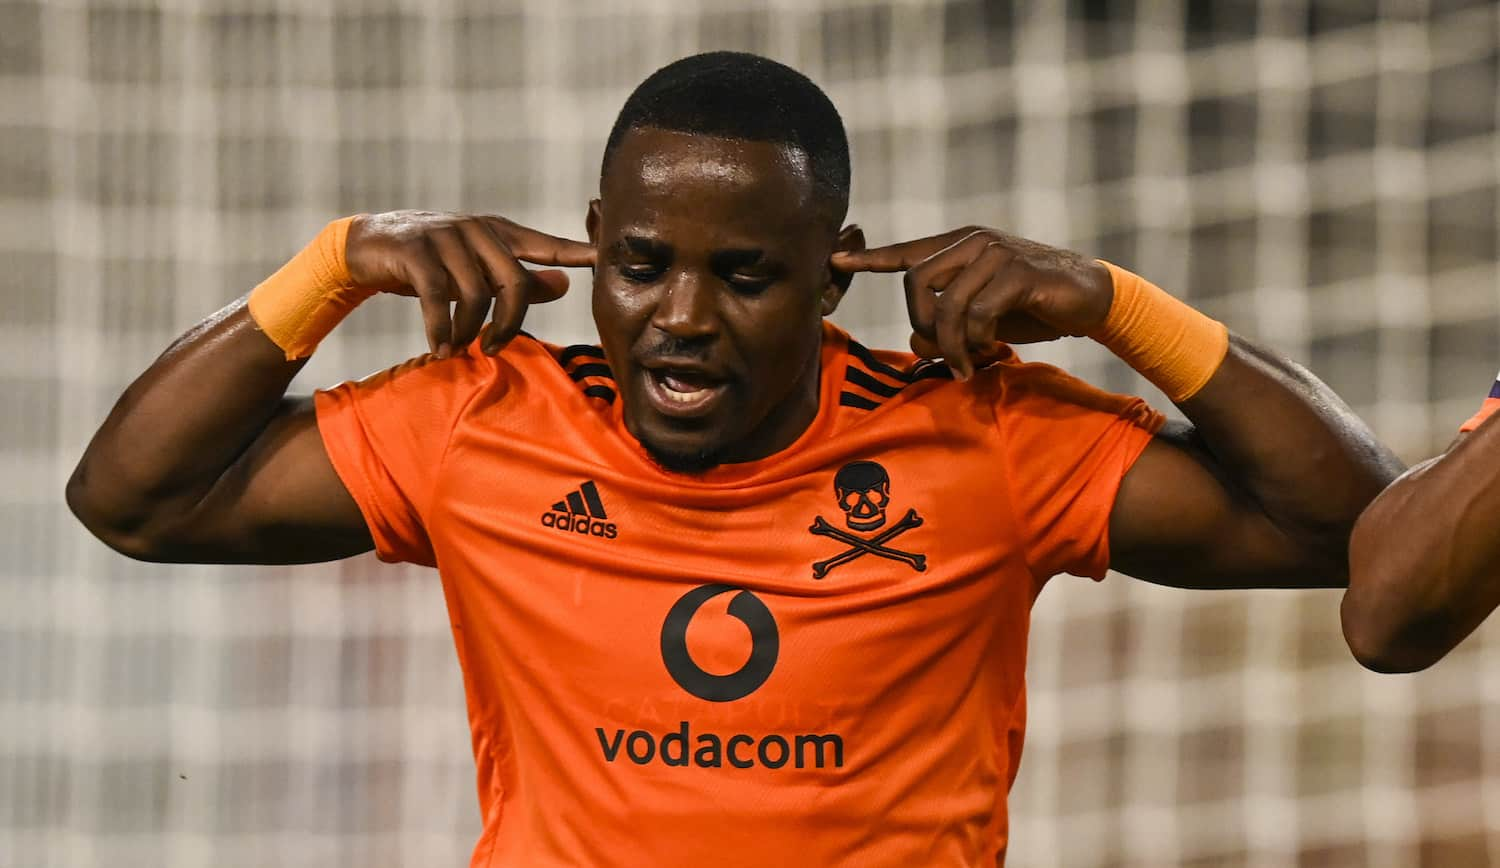 Another Pirates player in hot water after Motshwari ban - The Citizen